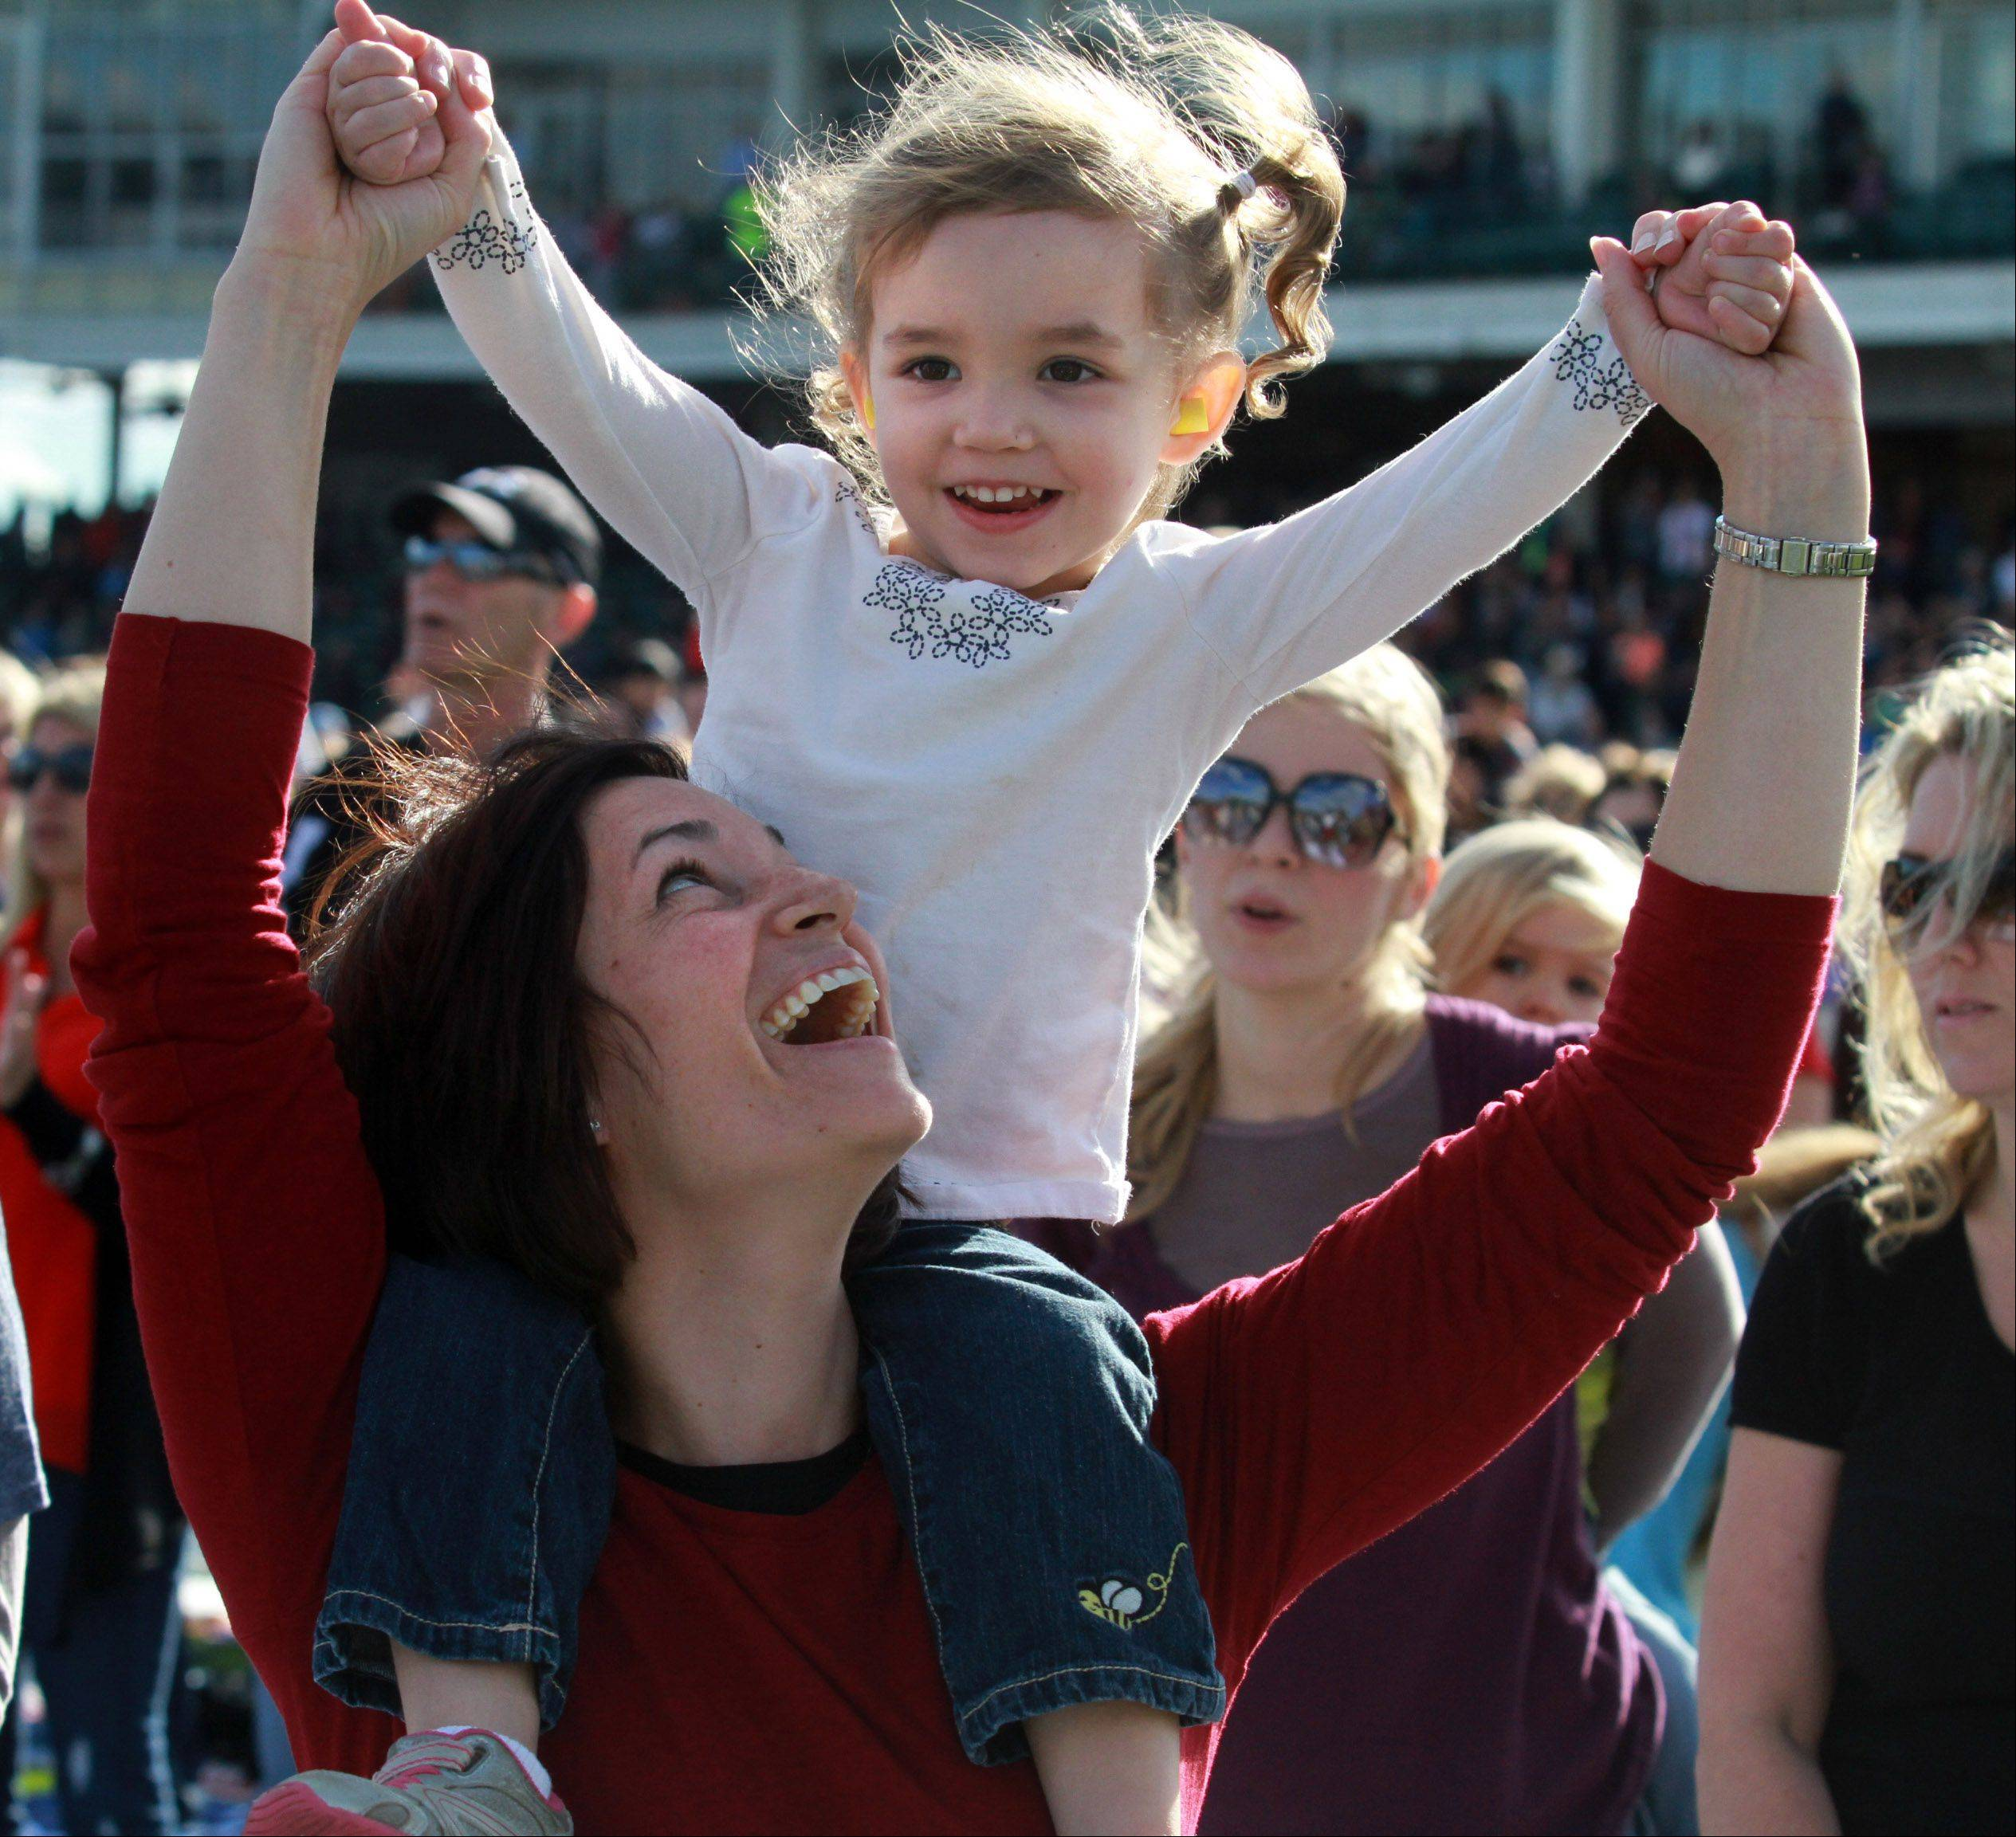 Three-year-old Clara Keith and mom, Rebecca, of Barrington, sway to the music of the Vertical Church Band at Harvest Bible Chapel's 25th anniversary celebration Saturday at Boomers Stadium in Schaumburg.